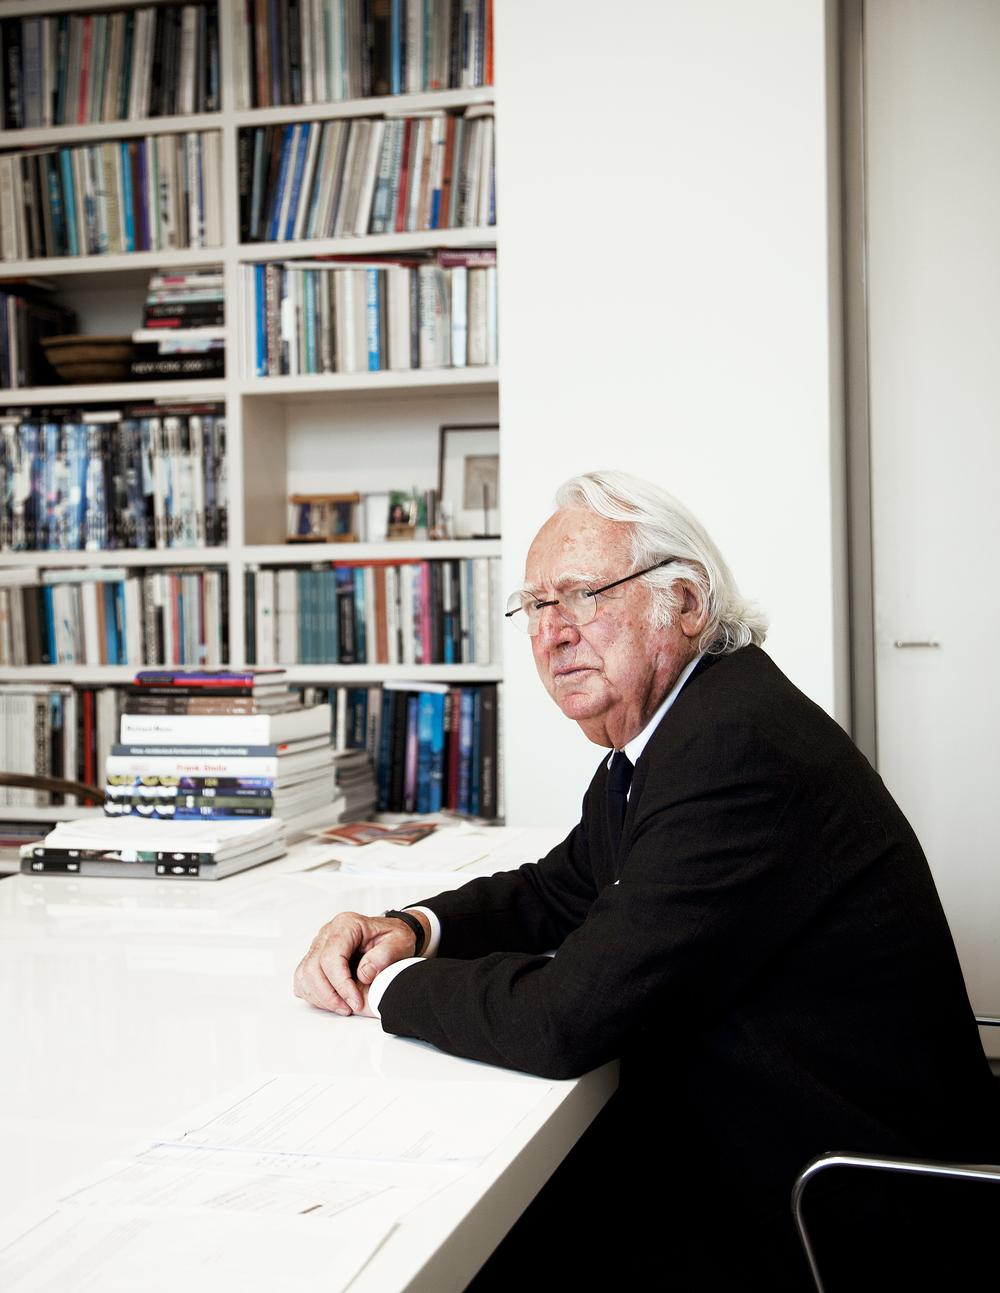 Richard Meier received his architectural training at Cornell University and set up his practice in 1963 / Photo: © Silja Magg